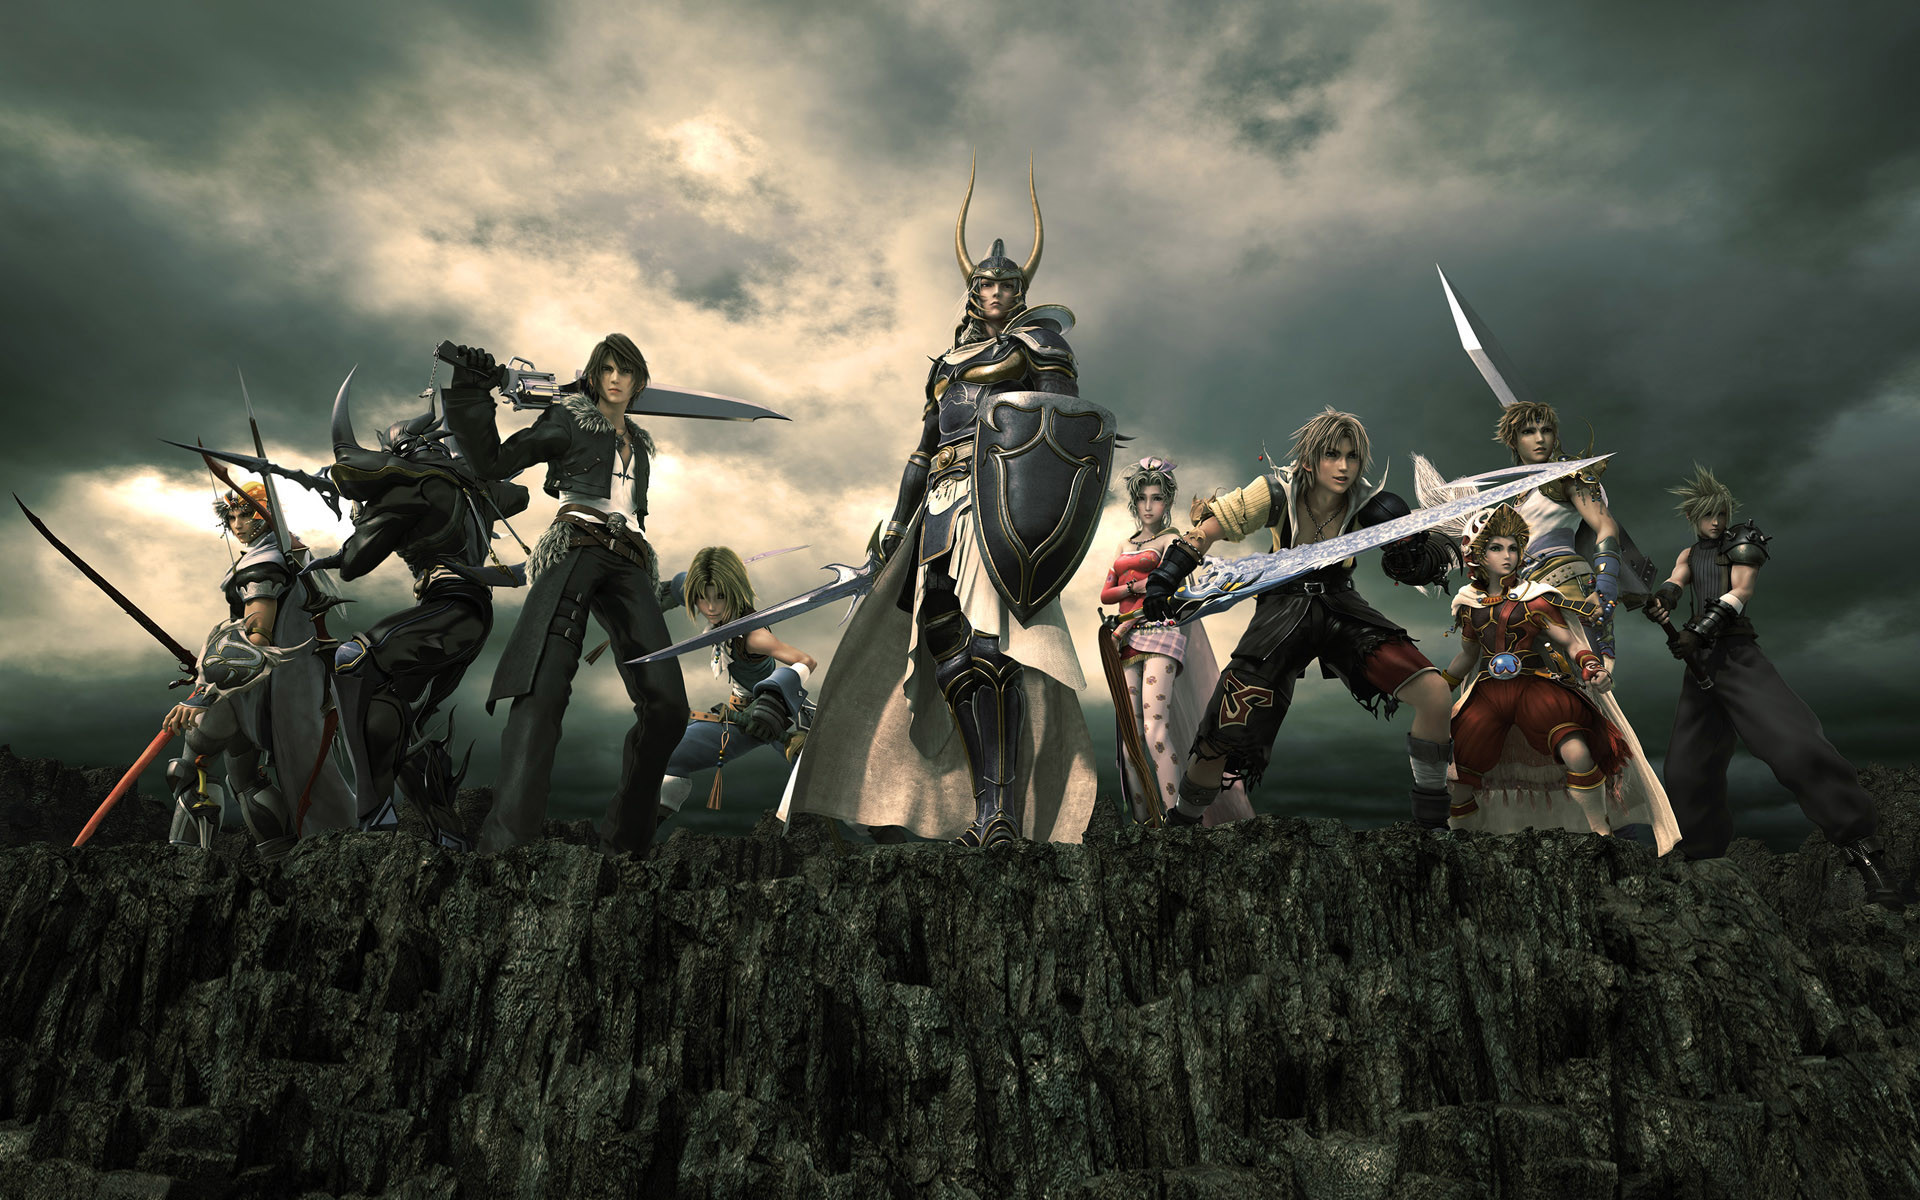 Cool Games Wallpaper Hd Images 3 HD Wallpapers